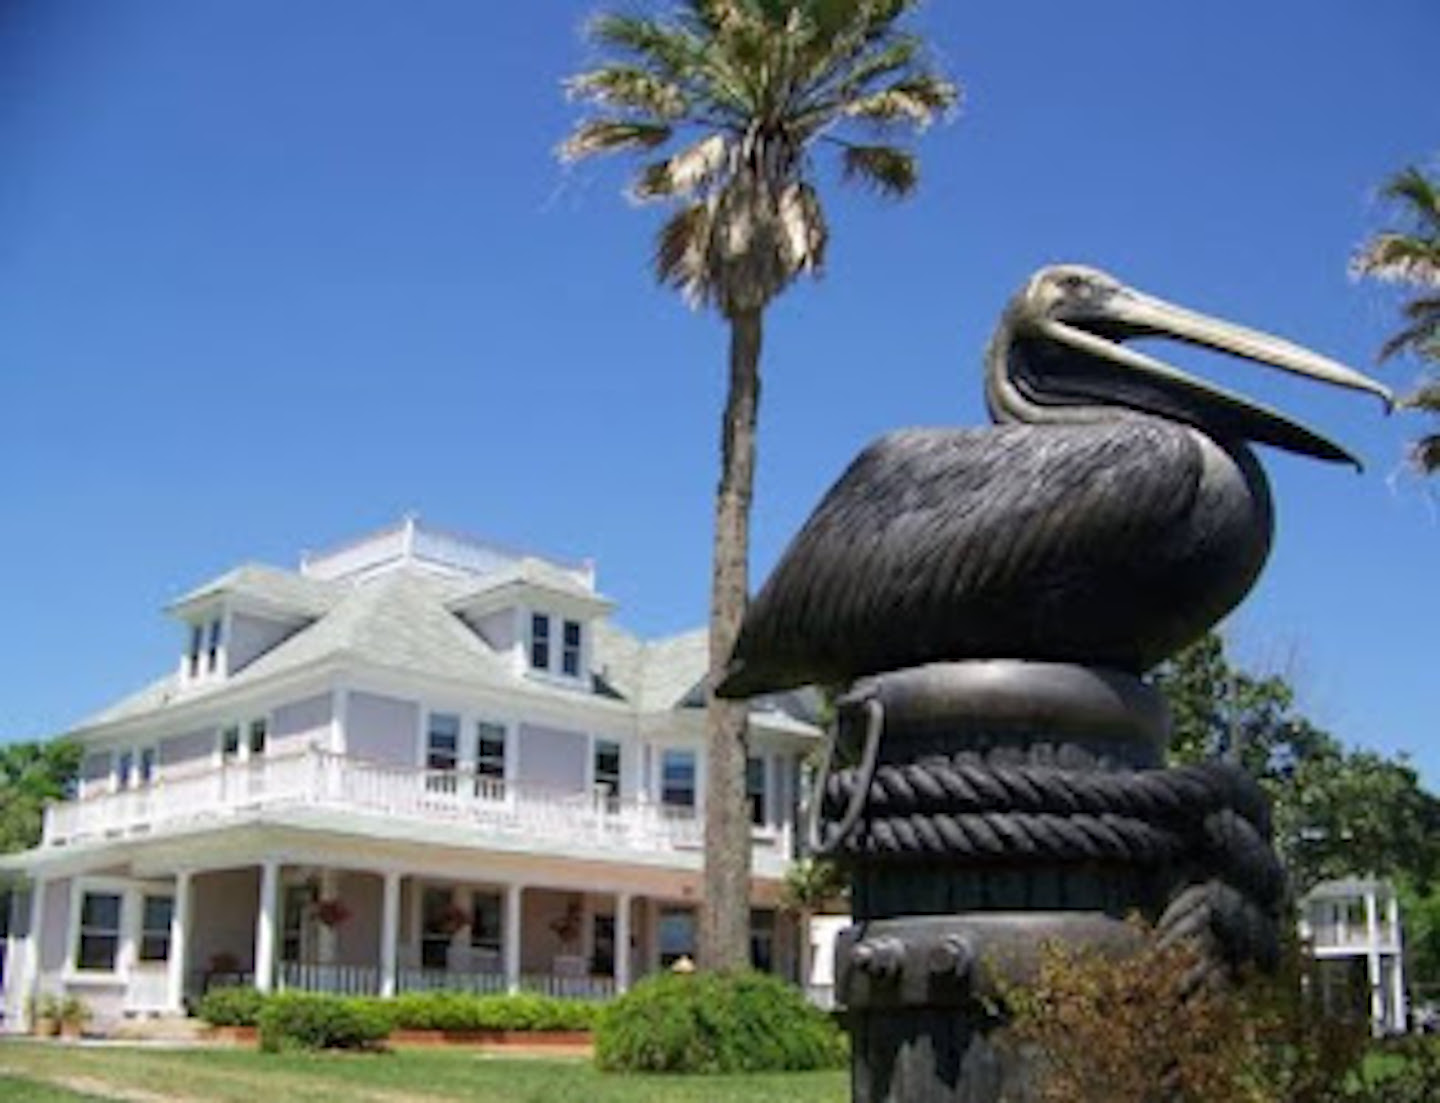 A statue in front of a building at The Peaceful Pelican.